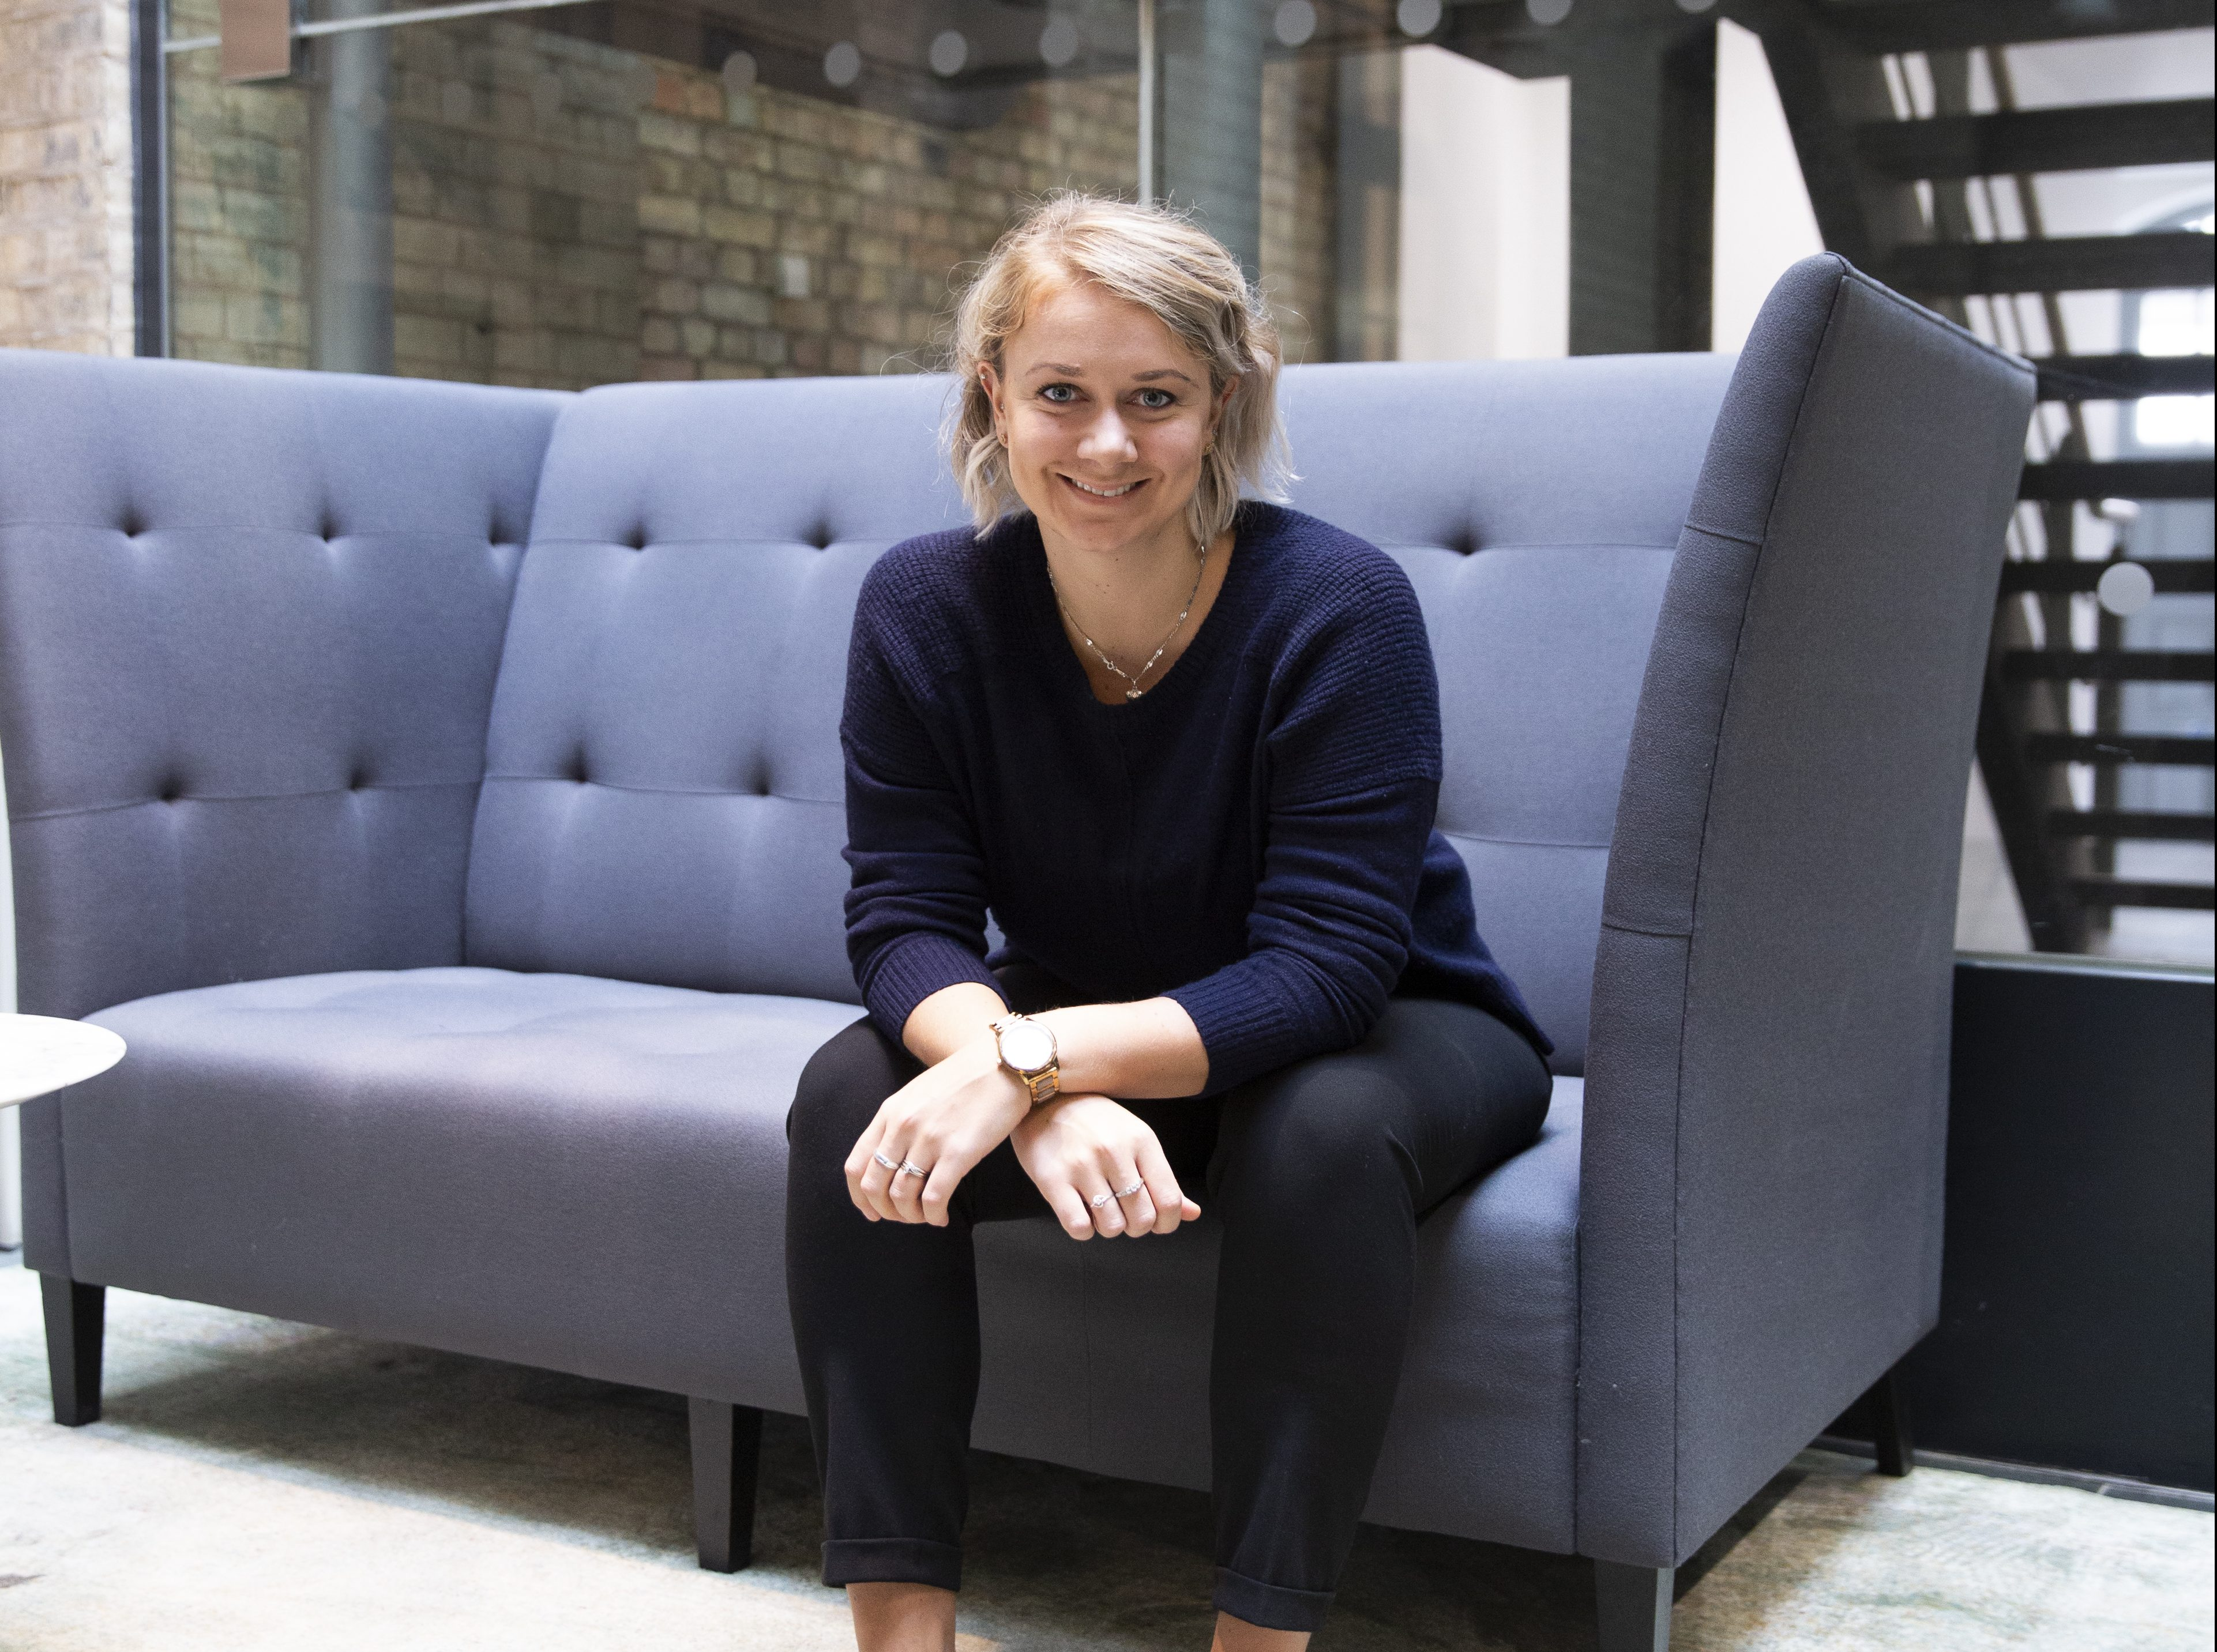 Interview: HR Director on Badoo's Fast-Paced Environment